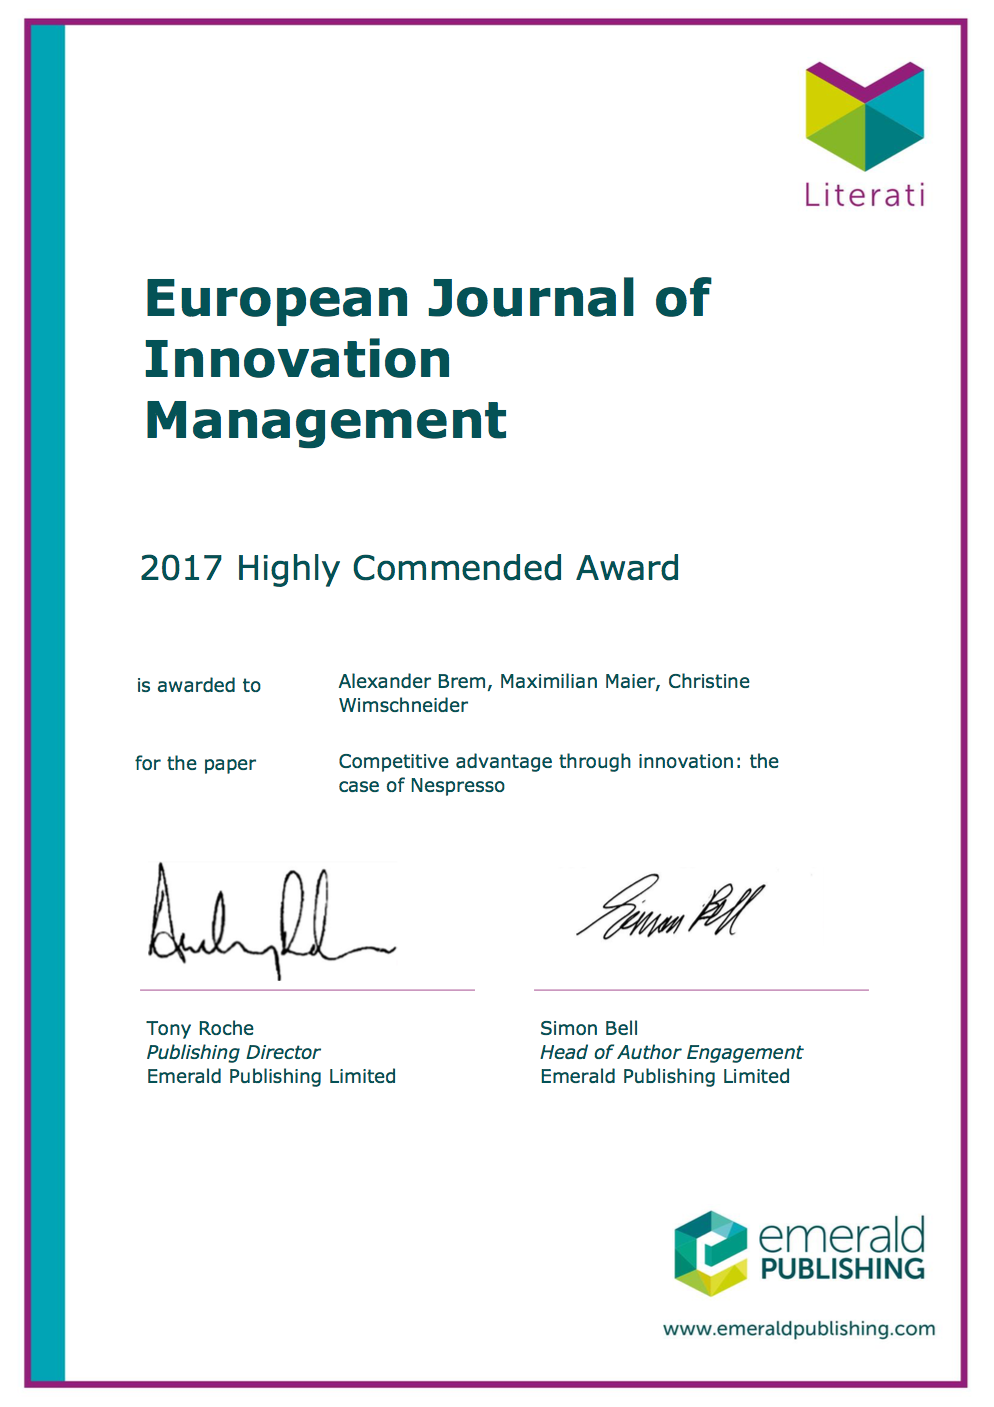 Highly Commended Award of the European Journal of Innovation Management